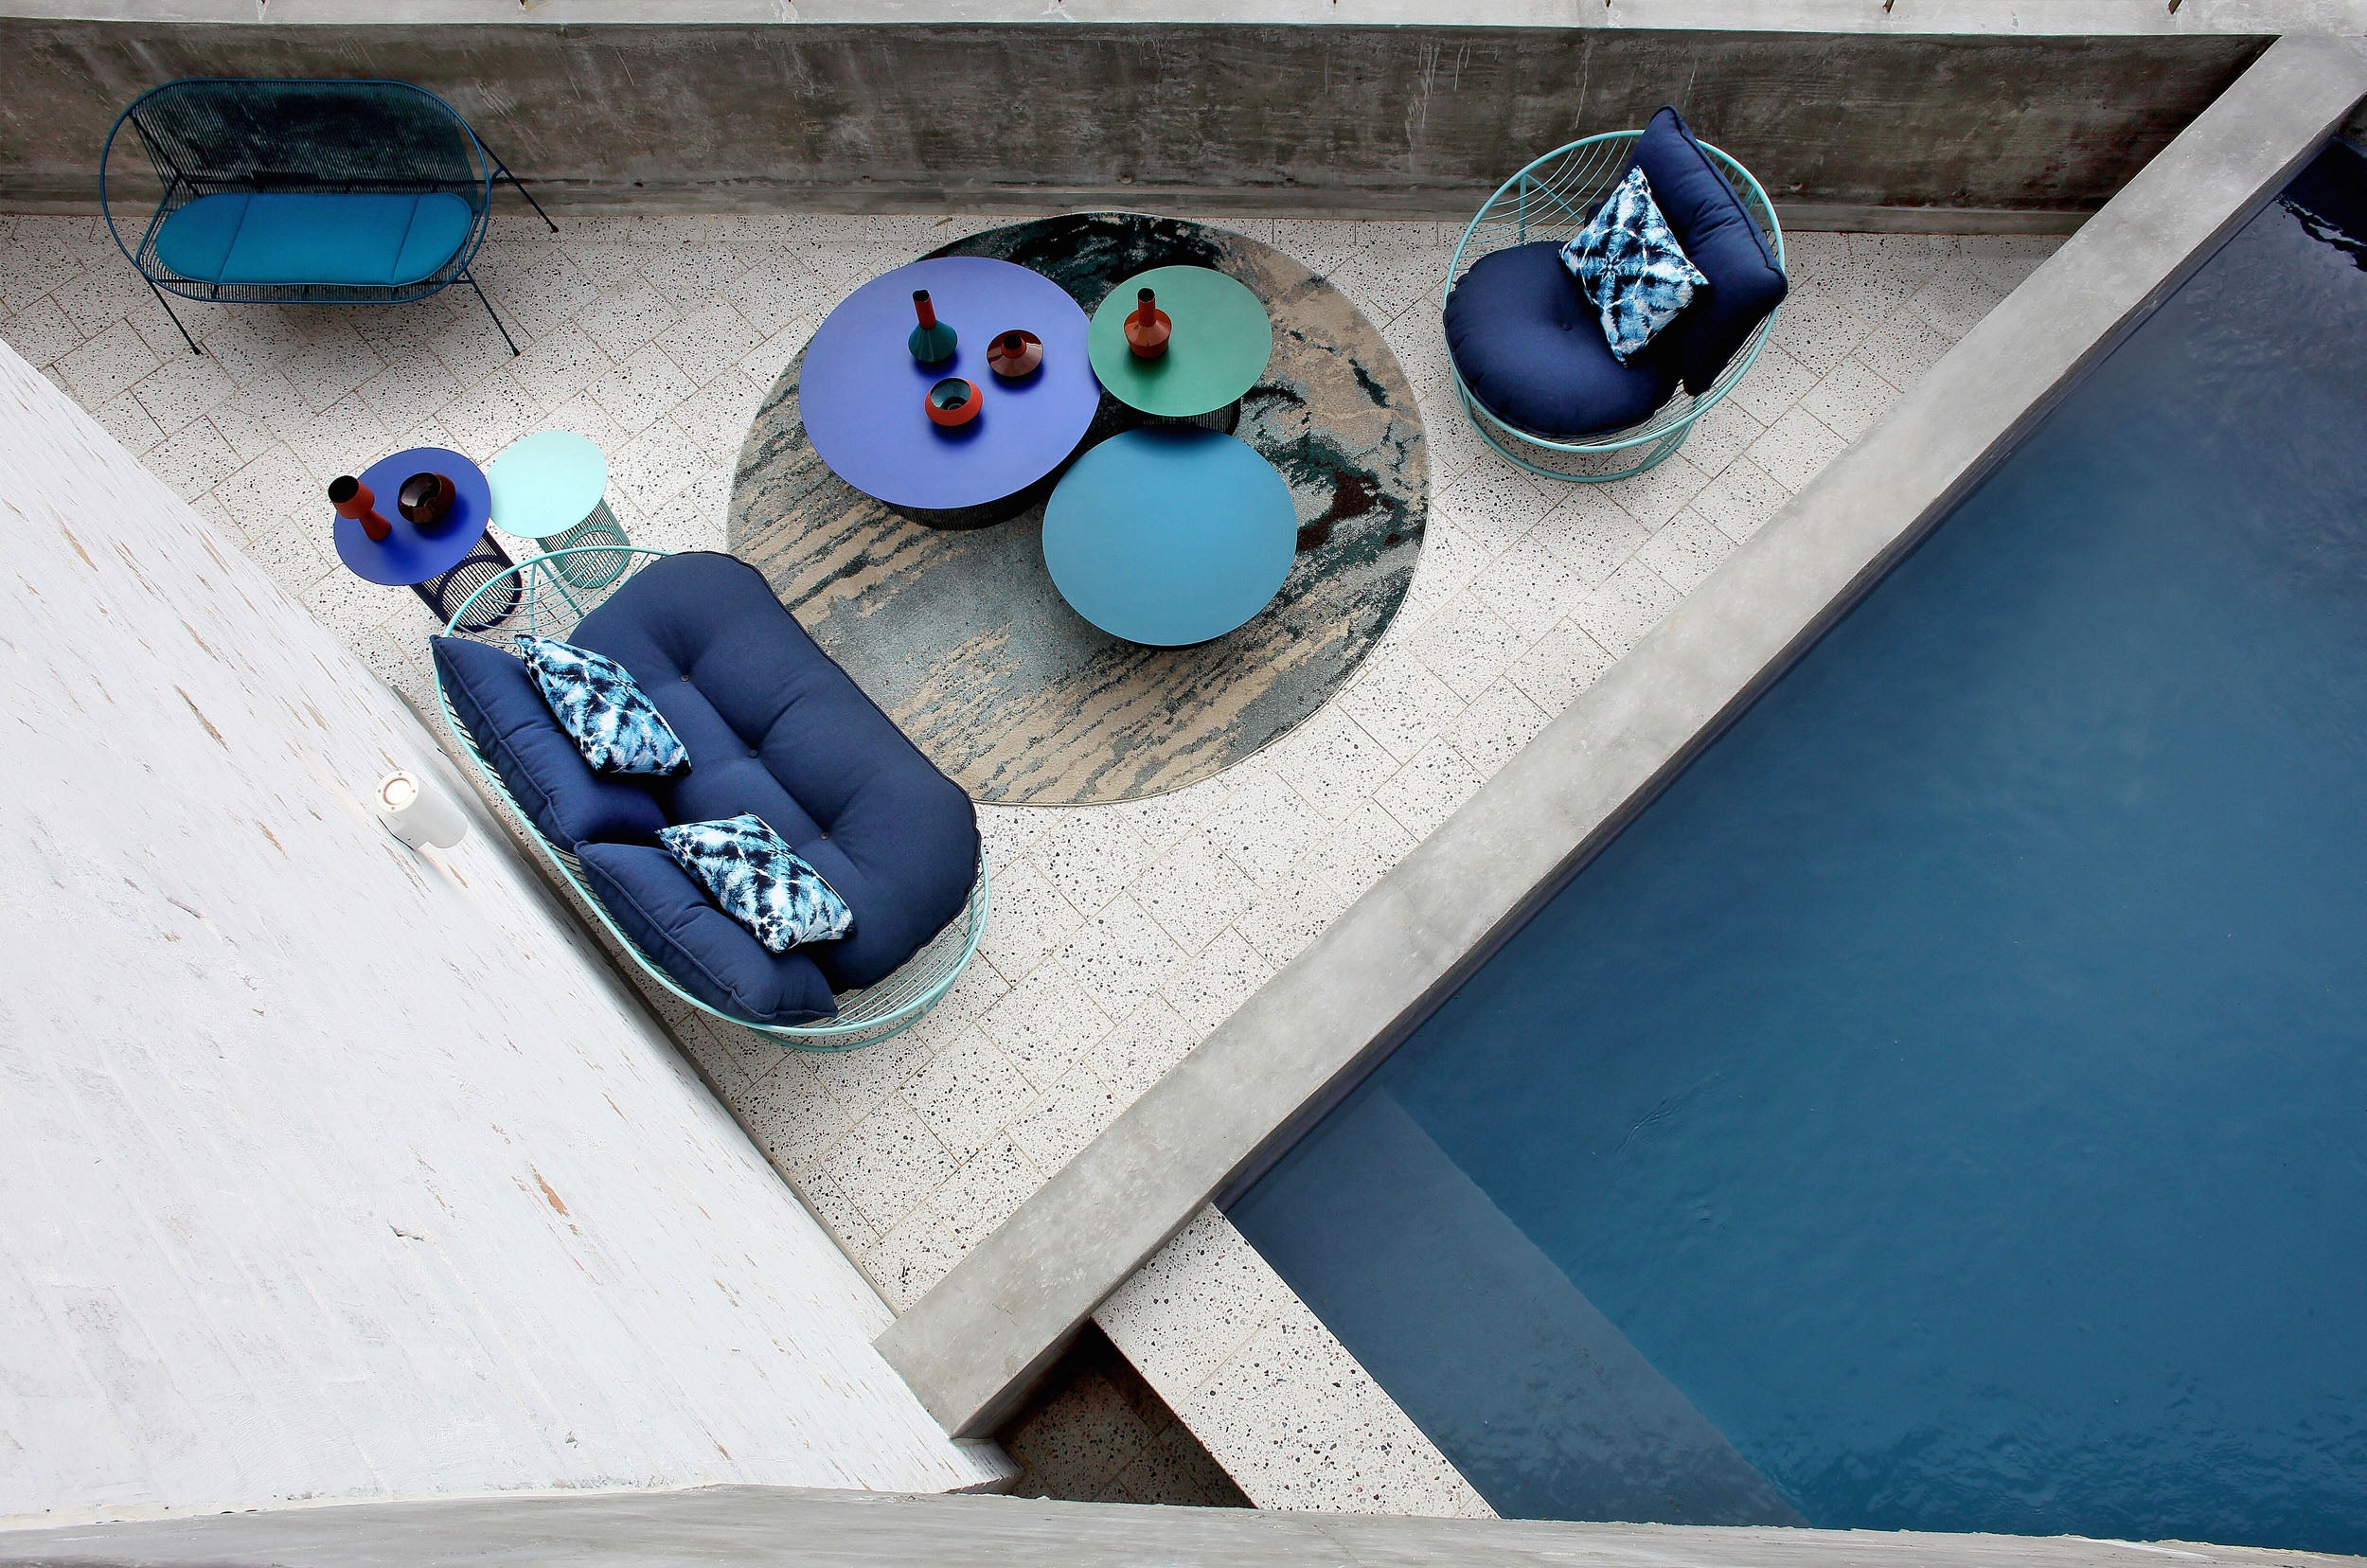 Haldane Martin outdoor furniture collection, green and blue outdoor chairs and coffee tables, styled in outdoor setting. Haldane Martin outdoor furniture is available at Sarza home goods and furniture store in Rye New York.